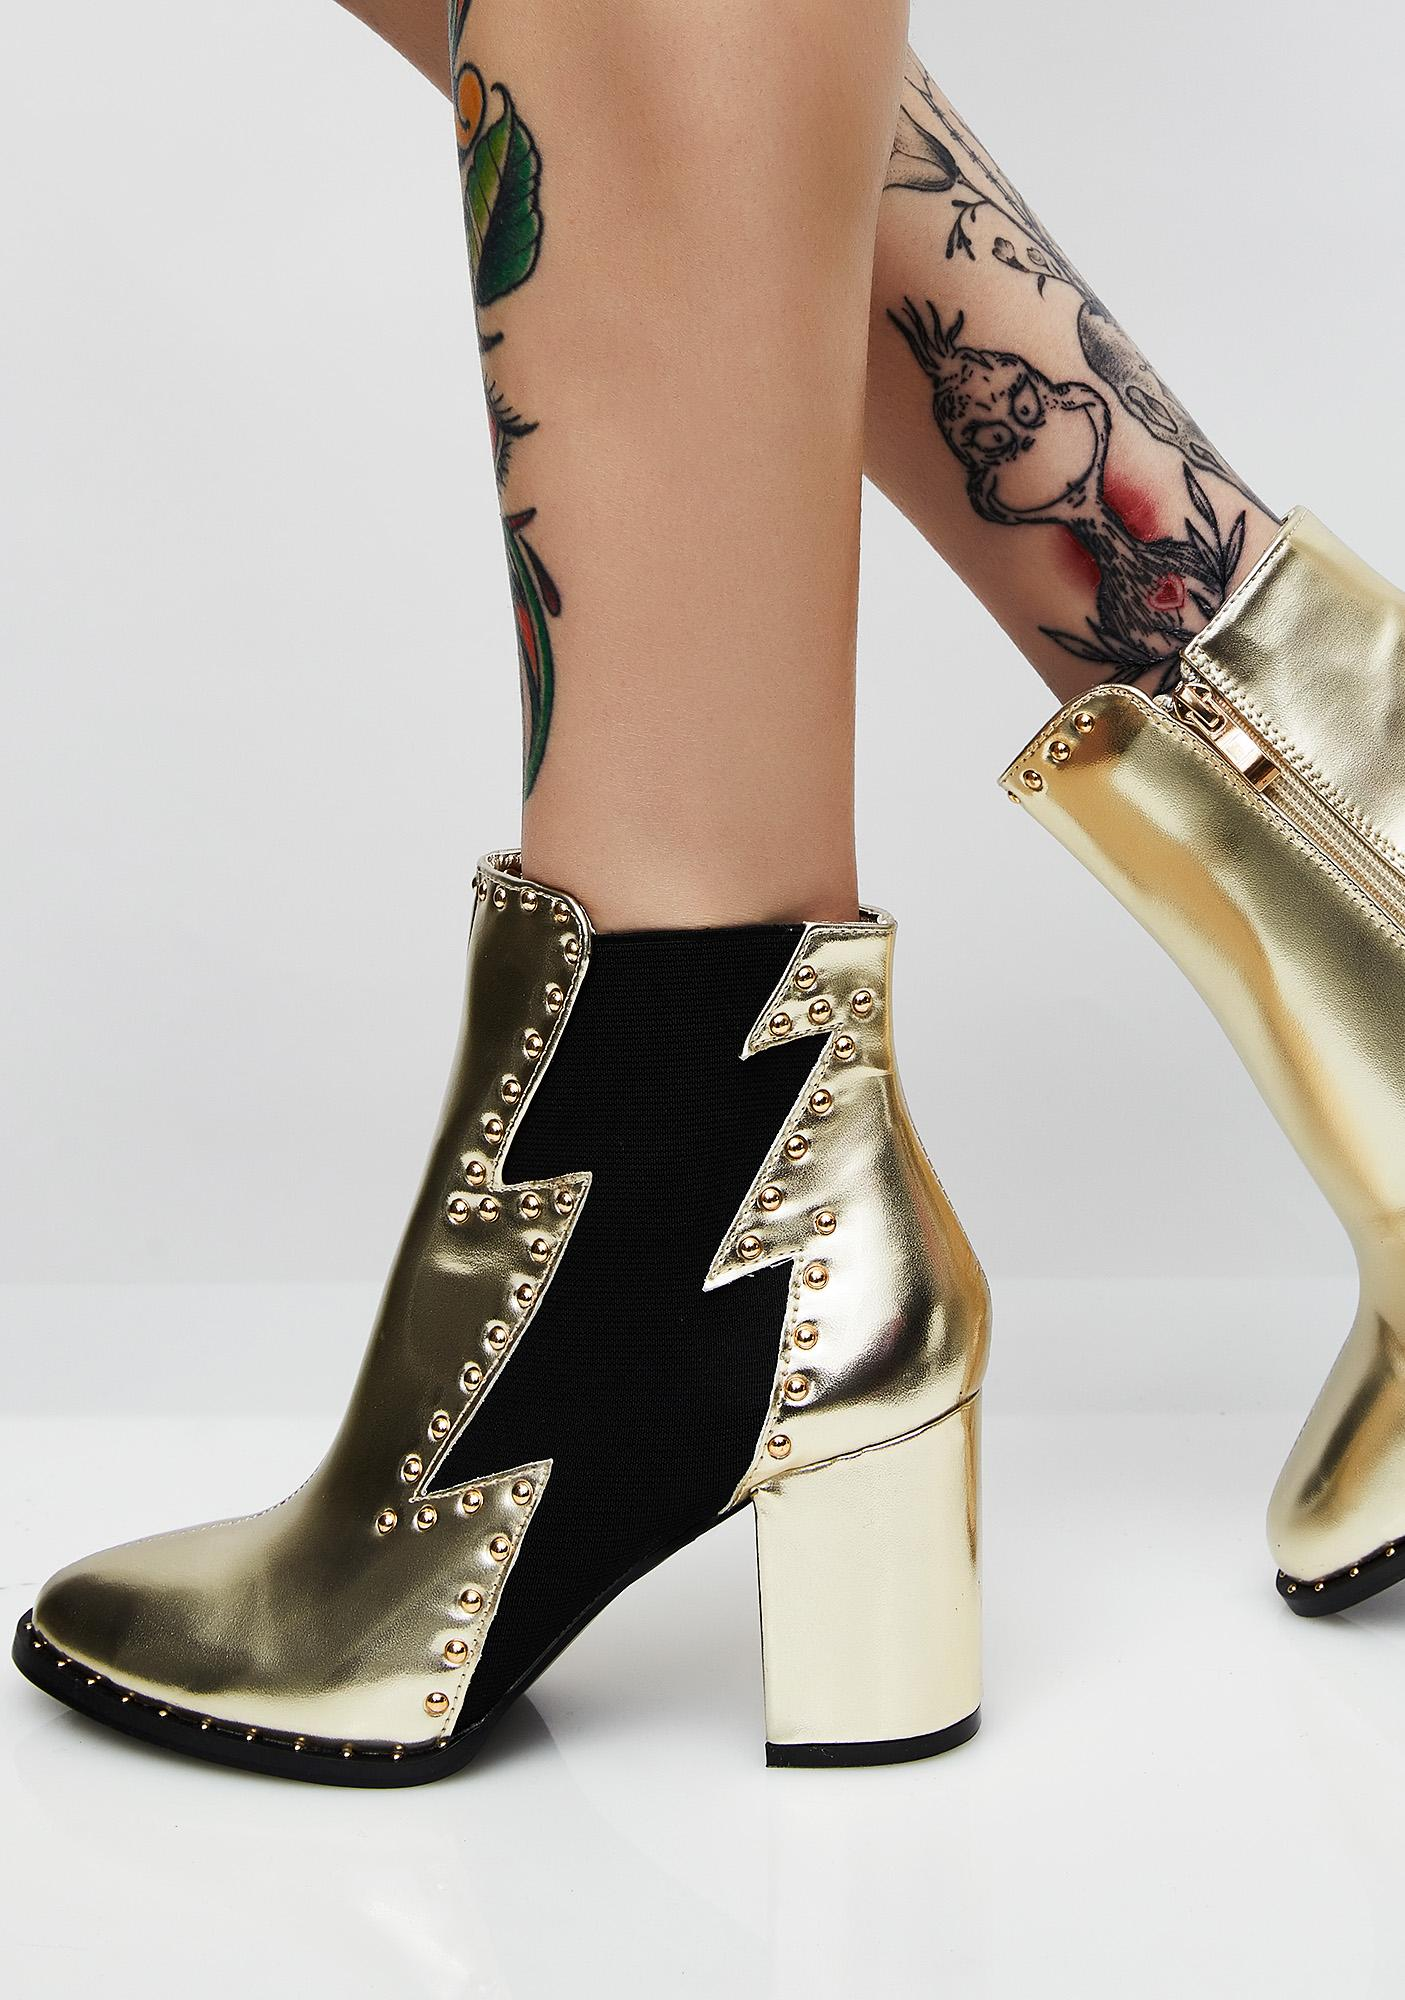 Lightning Strikes Ankle Boots